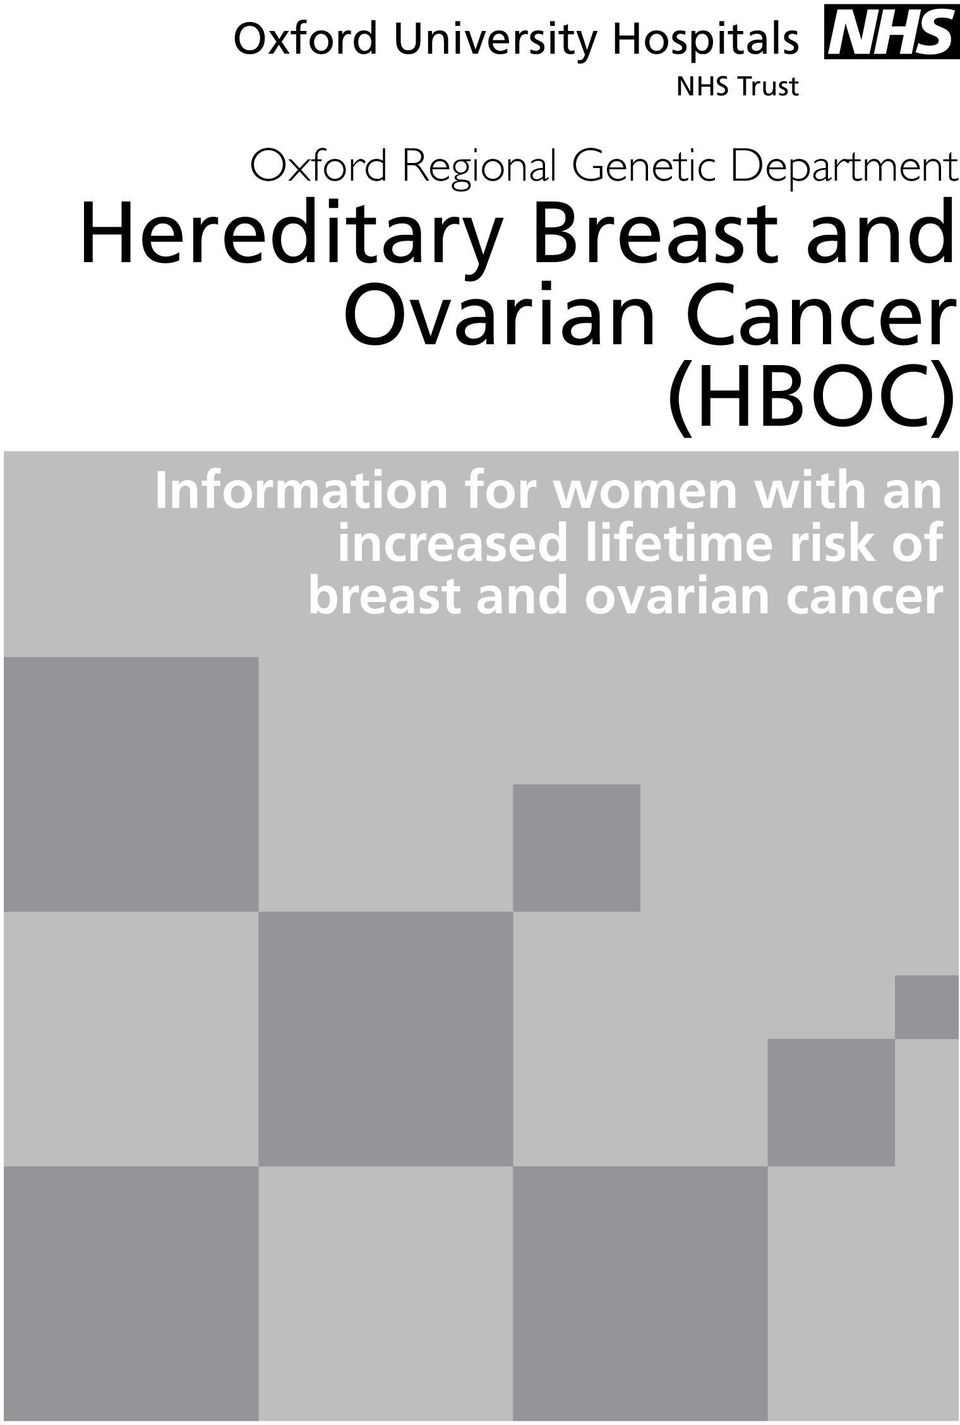 Ovarian Cancer (HBOC) Information for women with